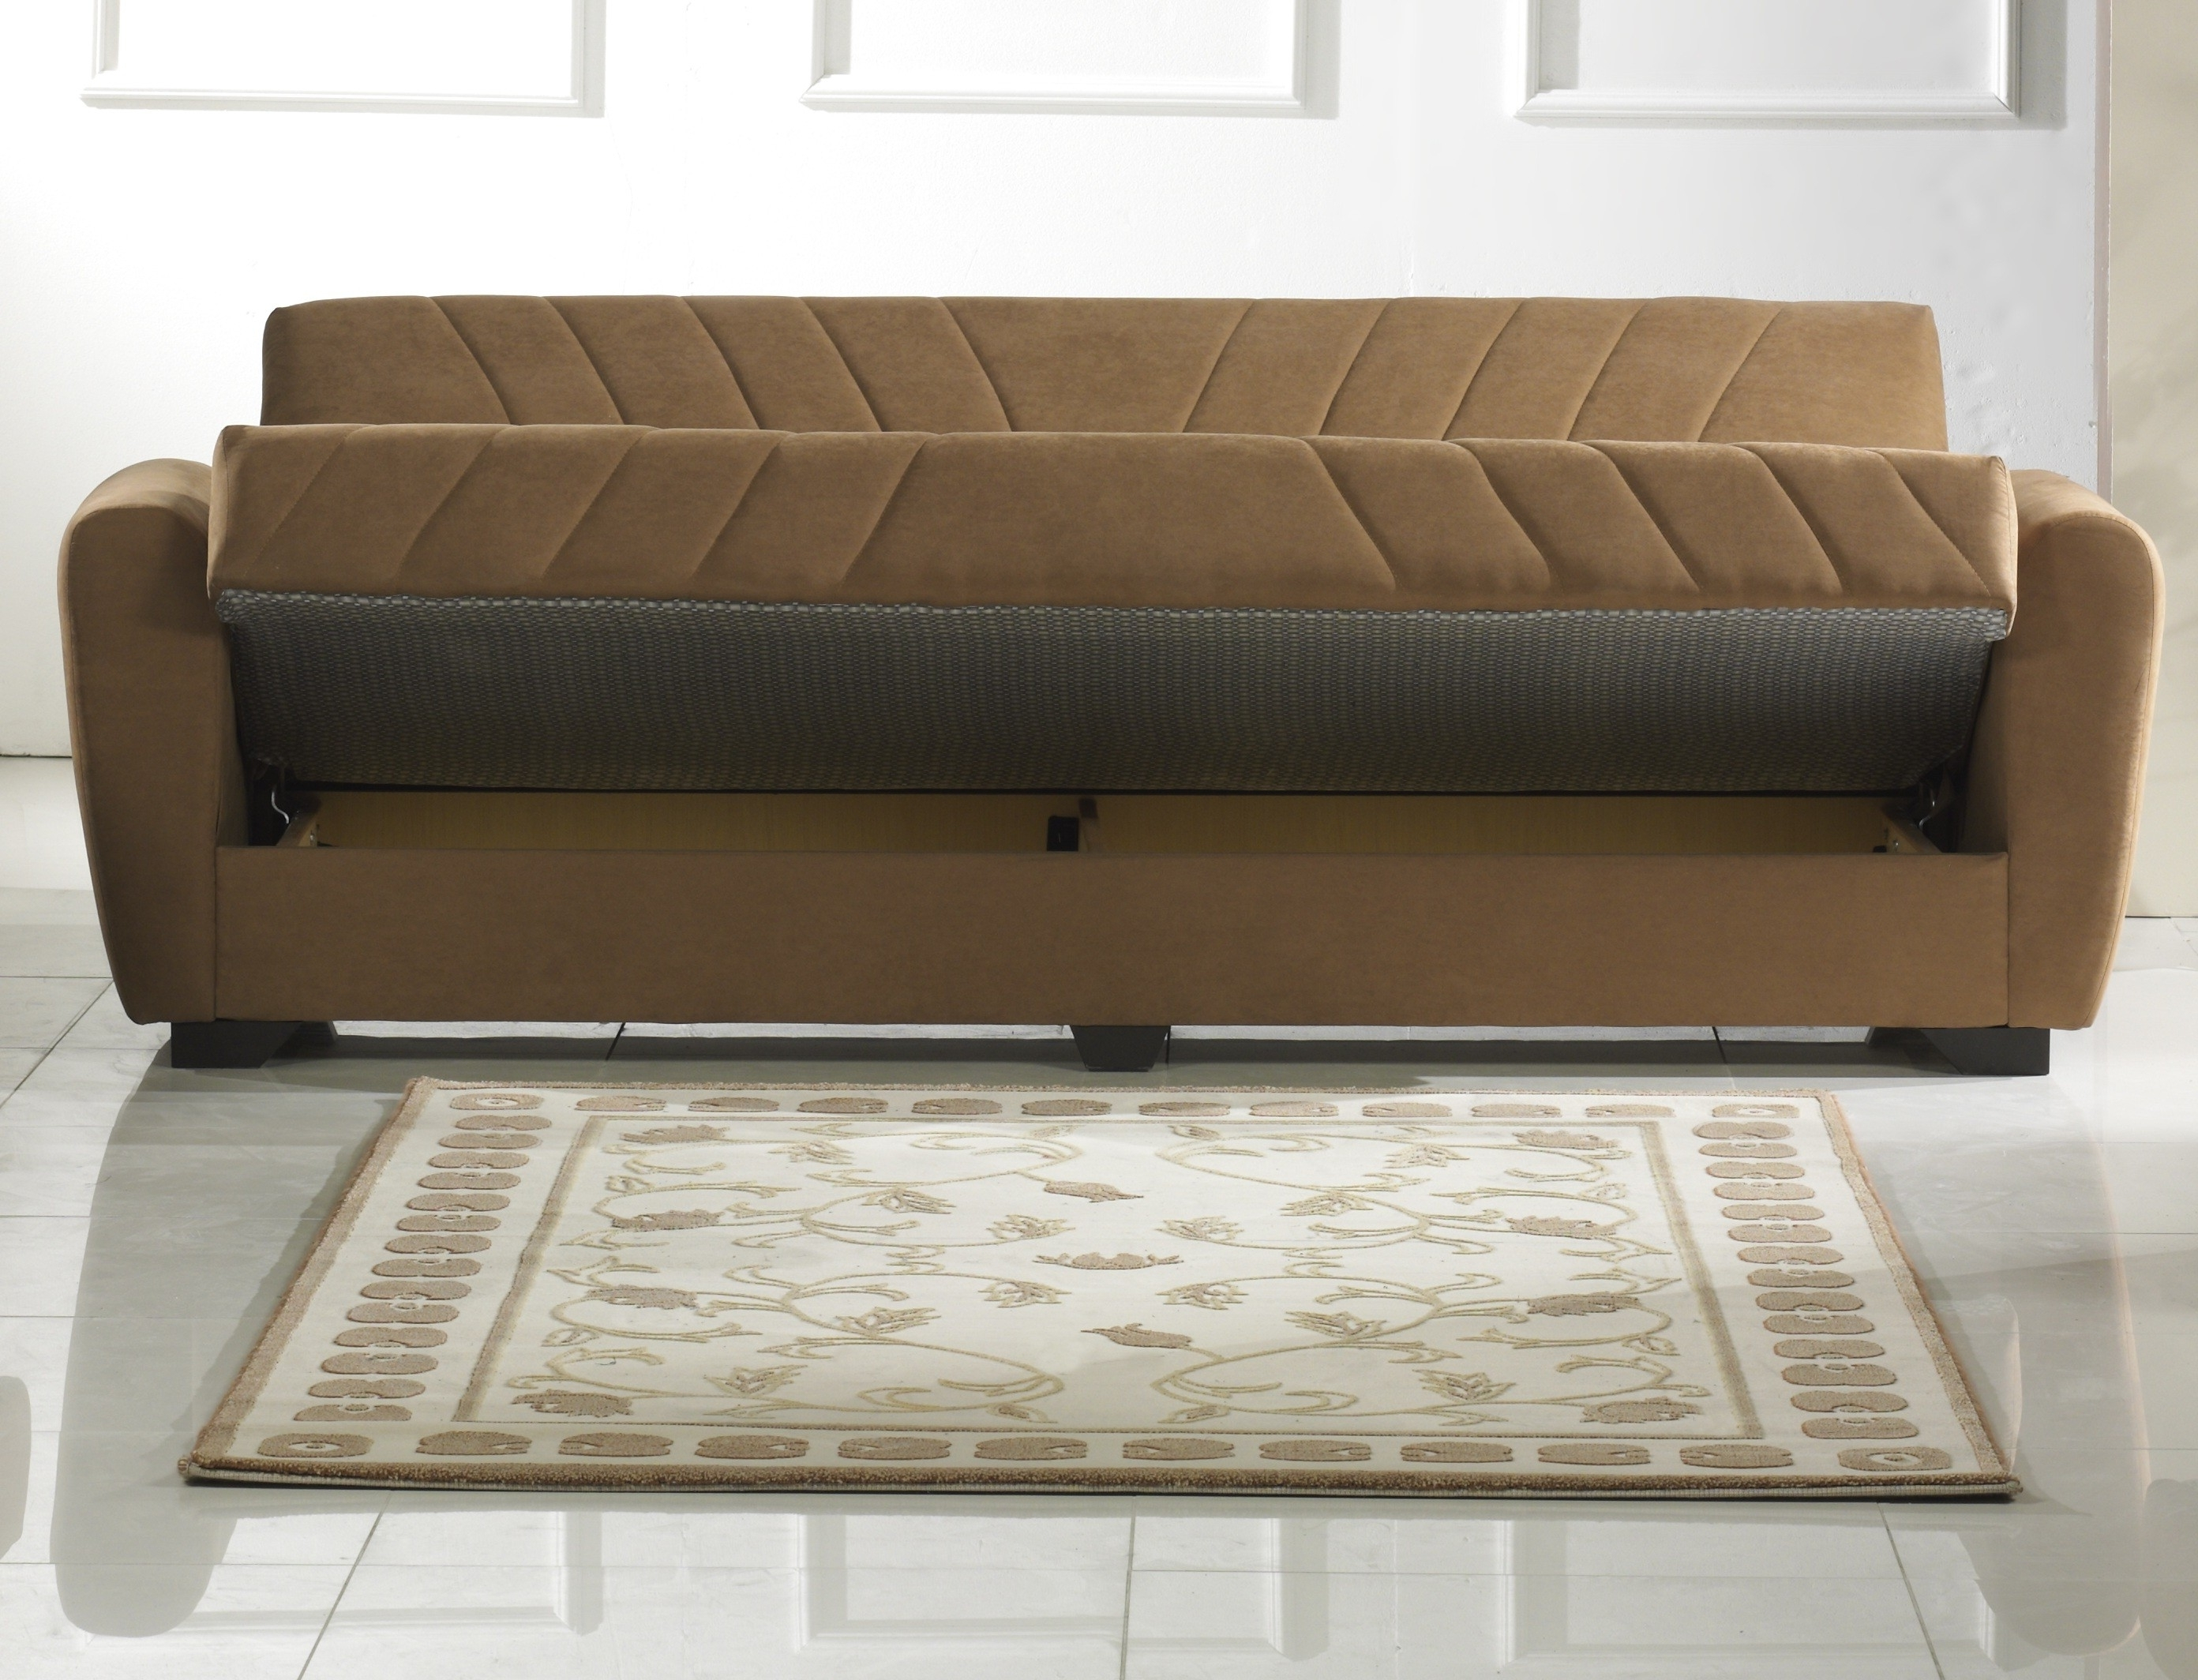 New Sectional Sofa Tampa – Buildsimplehome In Recent Tampa Sectional Sofas (View 5 of 15)